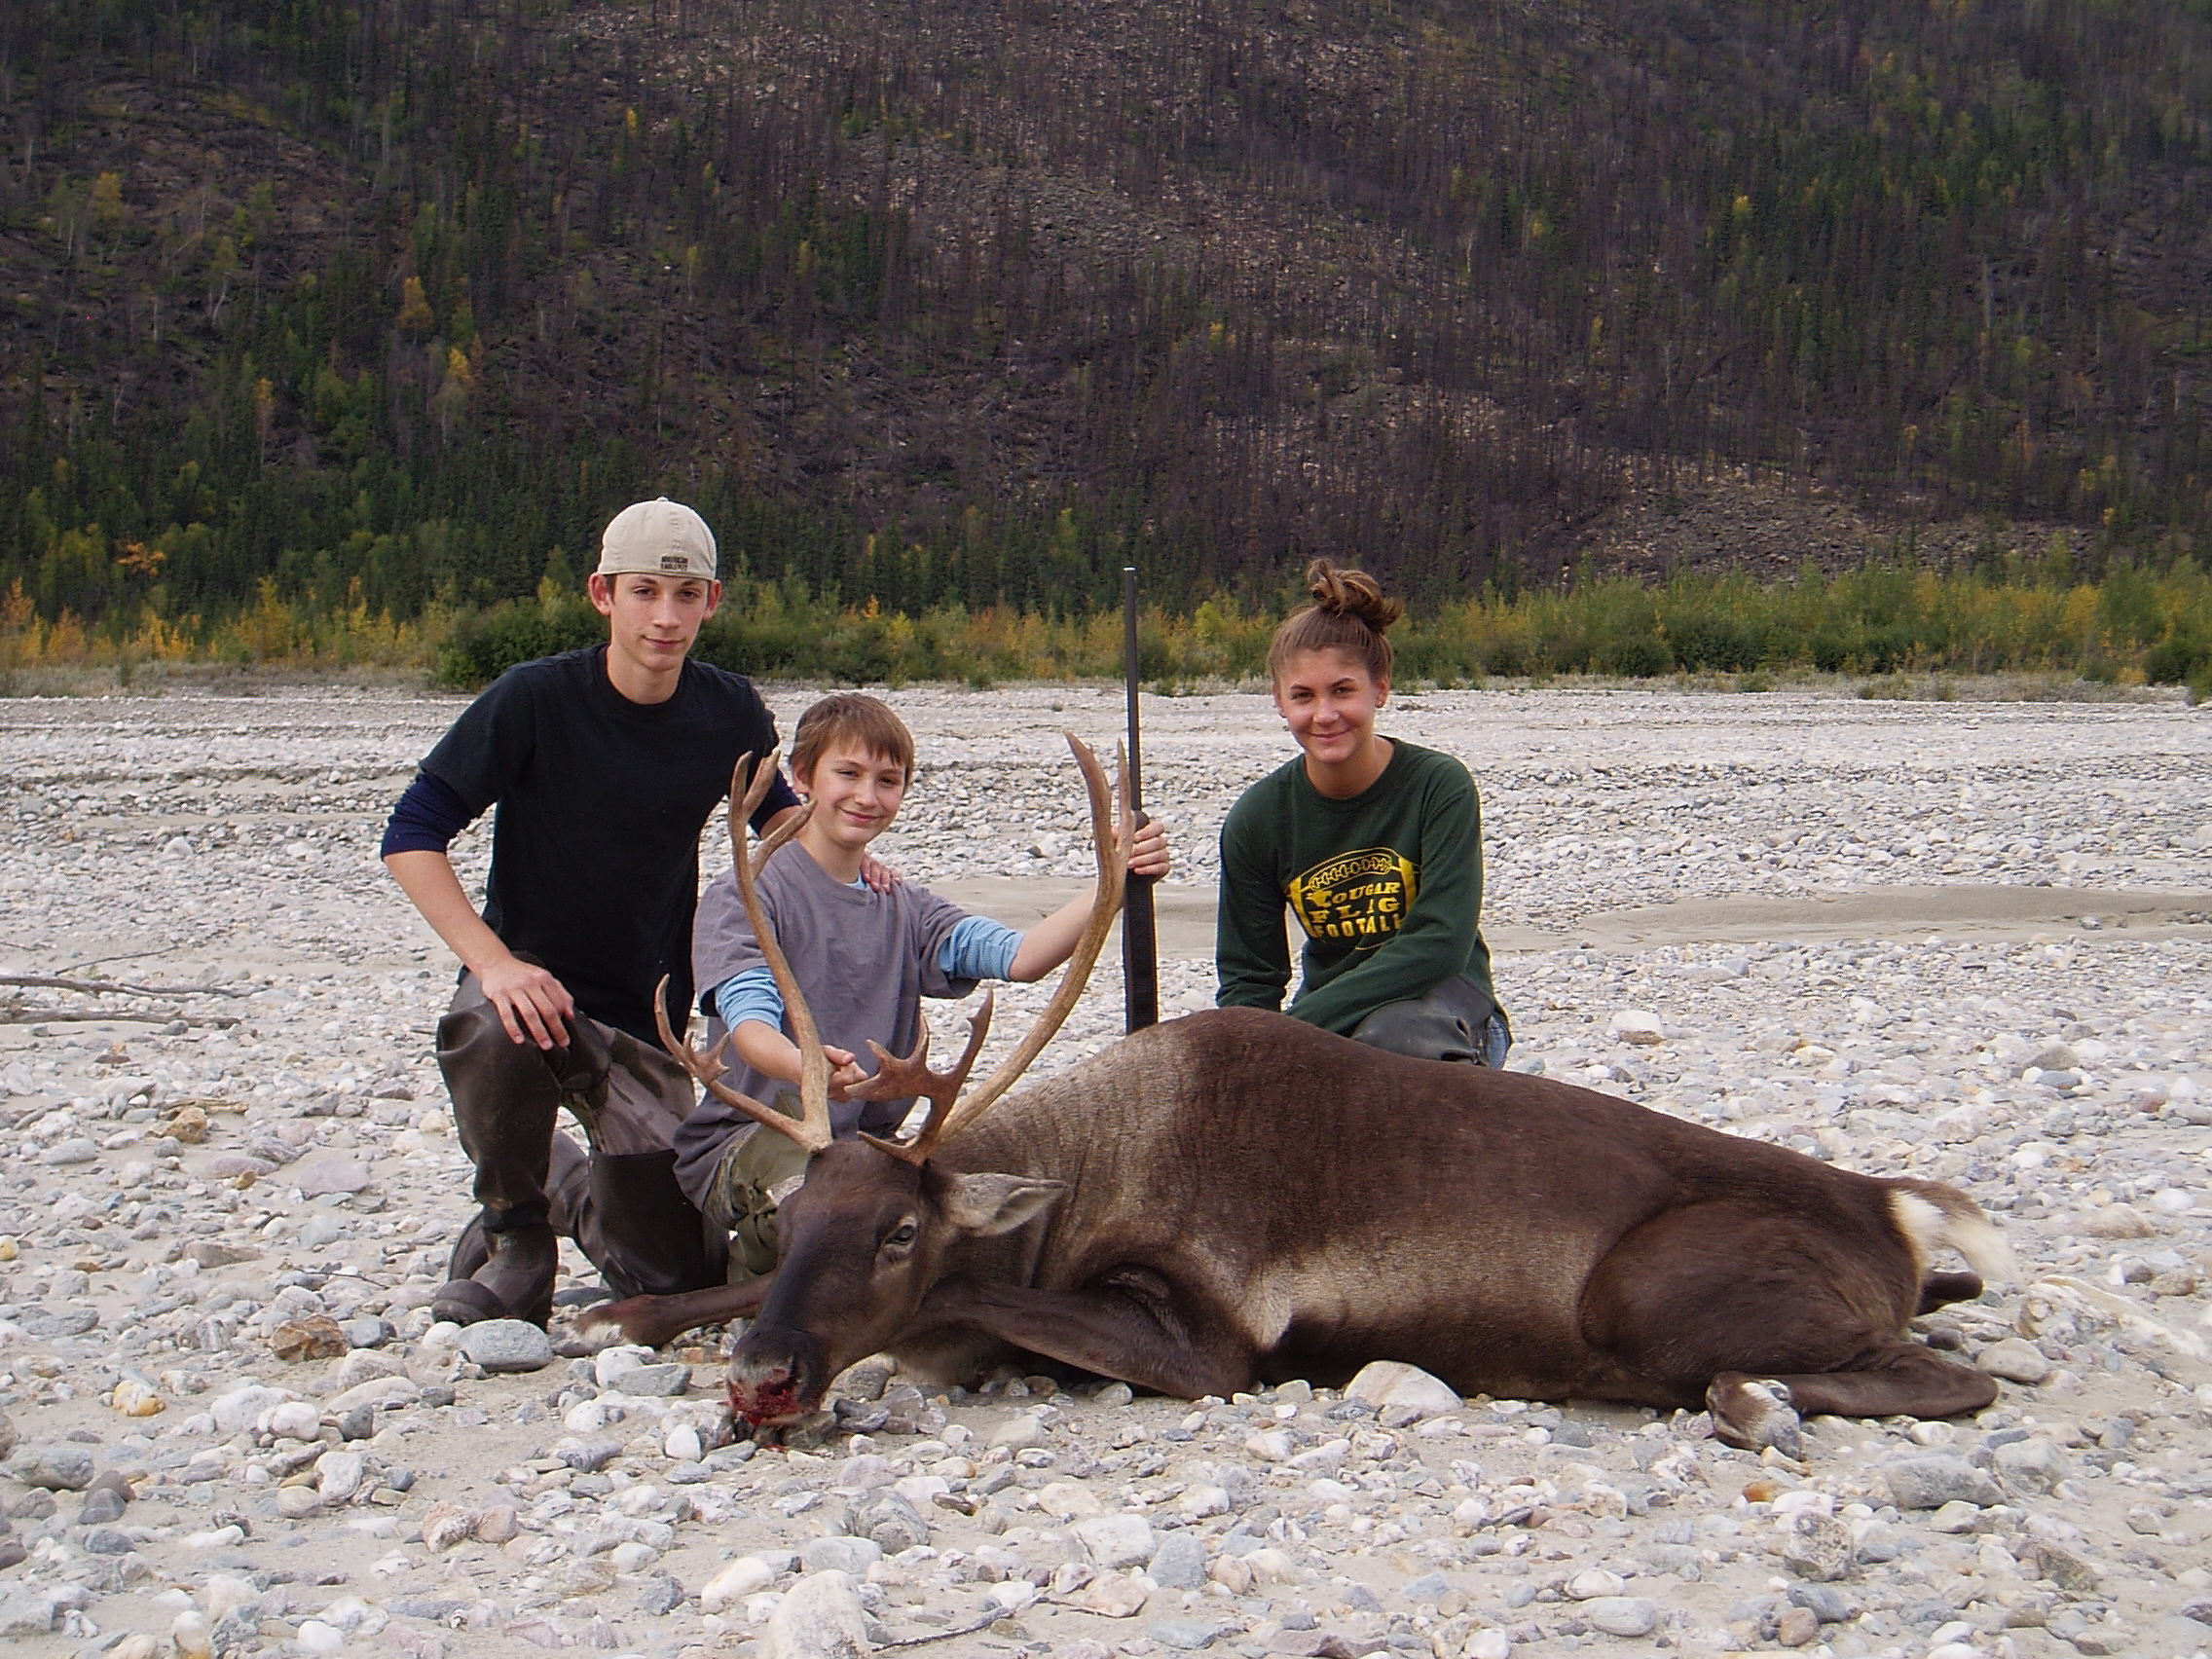 Nathan with his meat caribou surrounded by his brother Jared and sister Rachel.